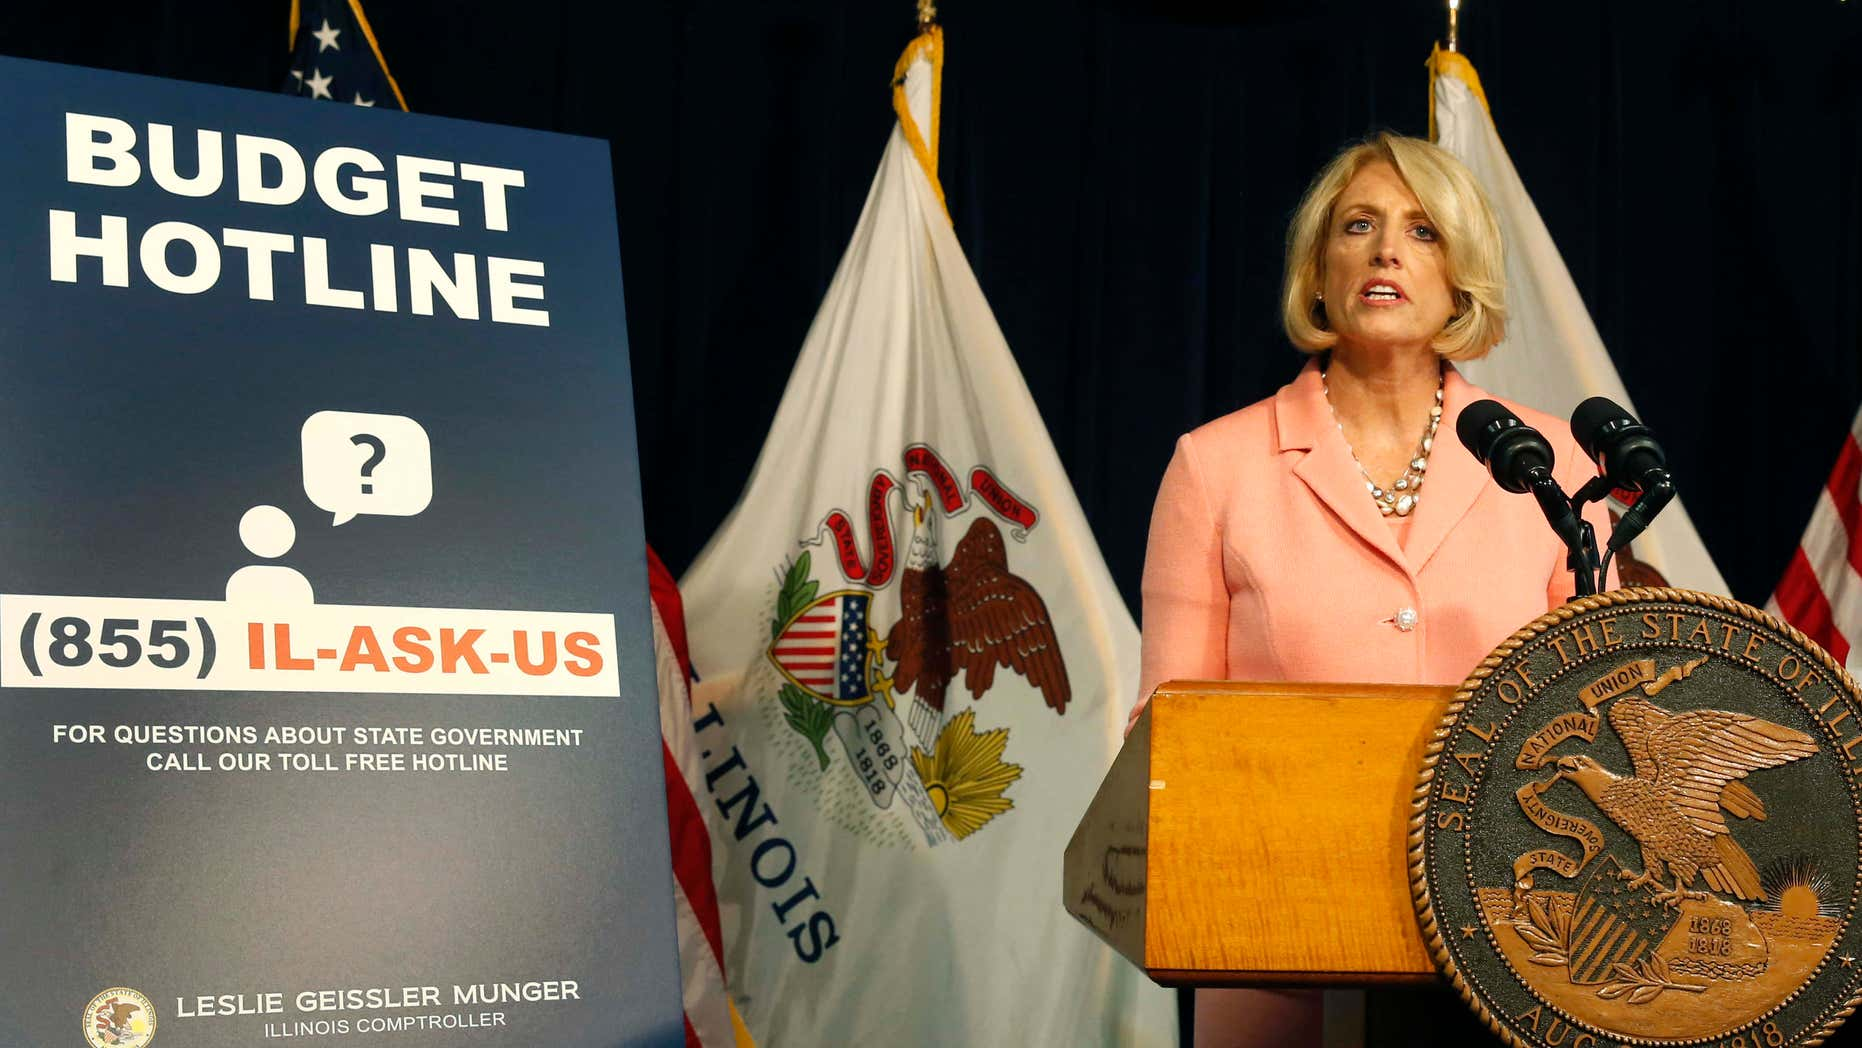 Illinois Comptroller Leslie Geissler Munger begins a news conference on the state budget Thursday, July 14, 2016, in Chicago.